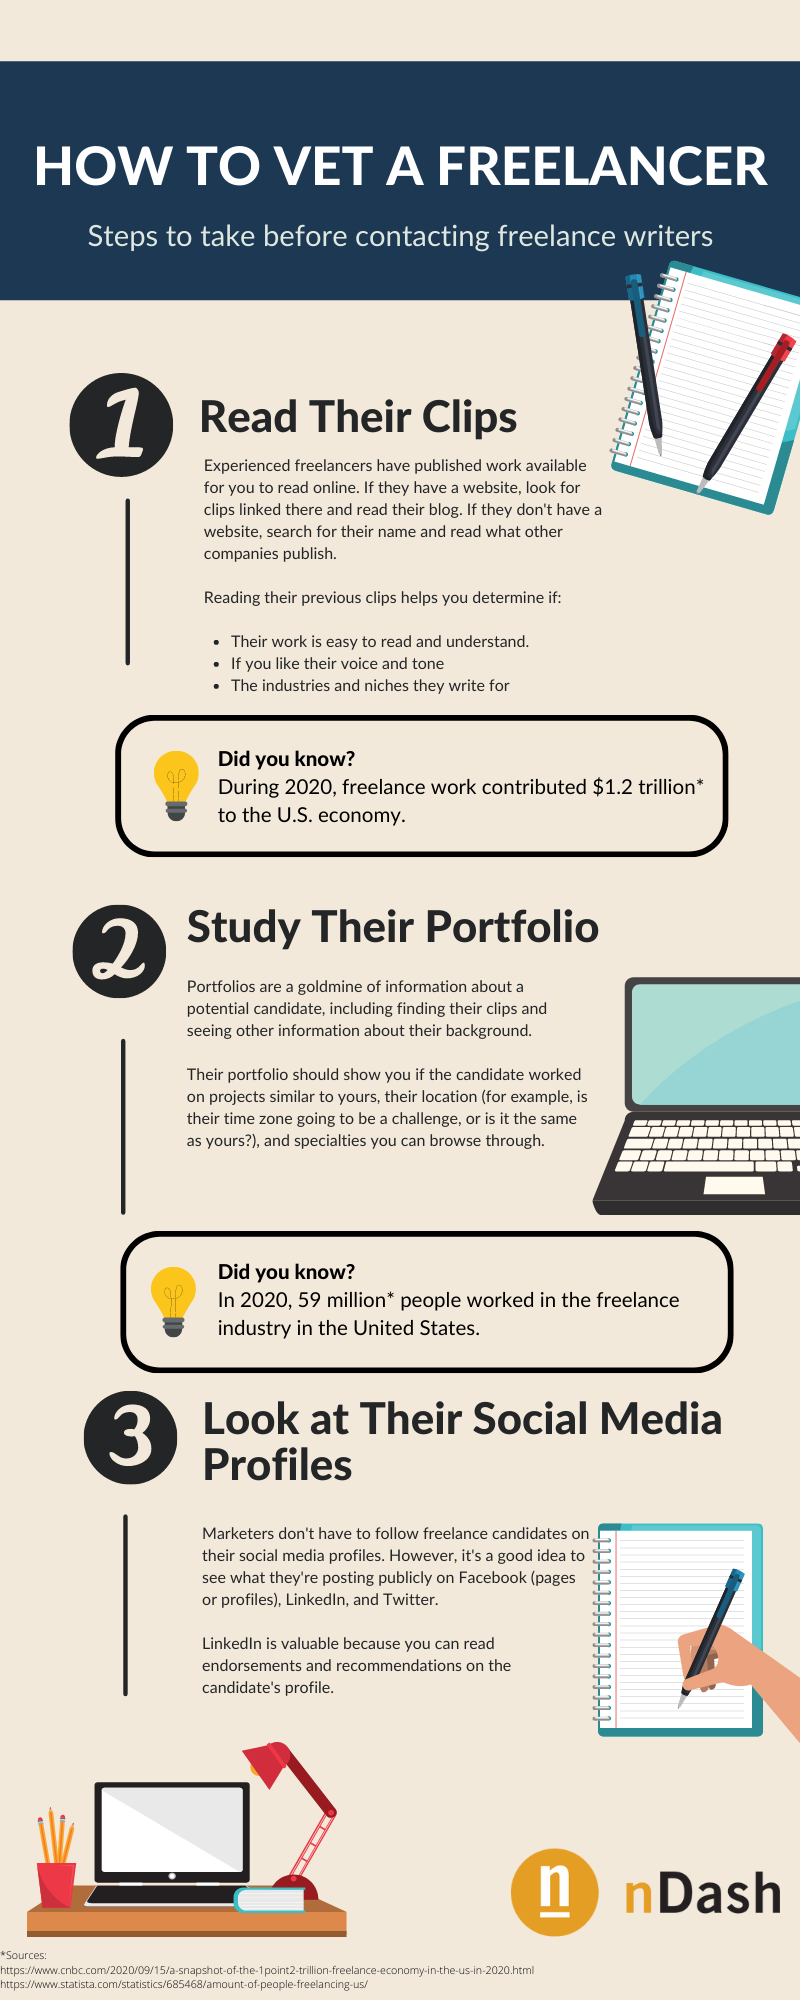 How to Vet a Freelancer Infographic